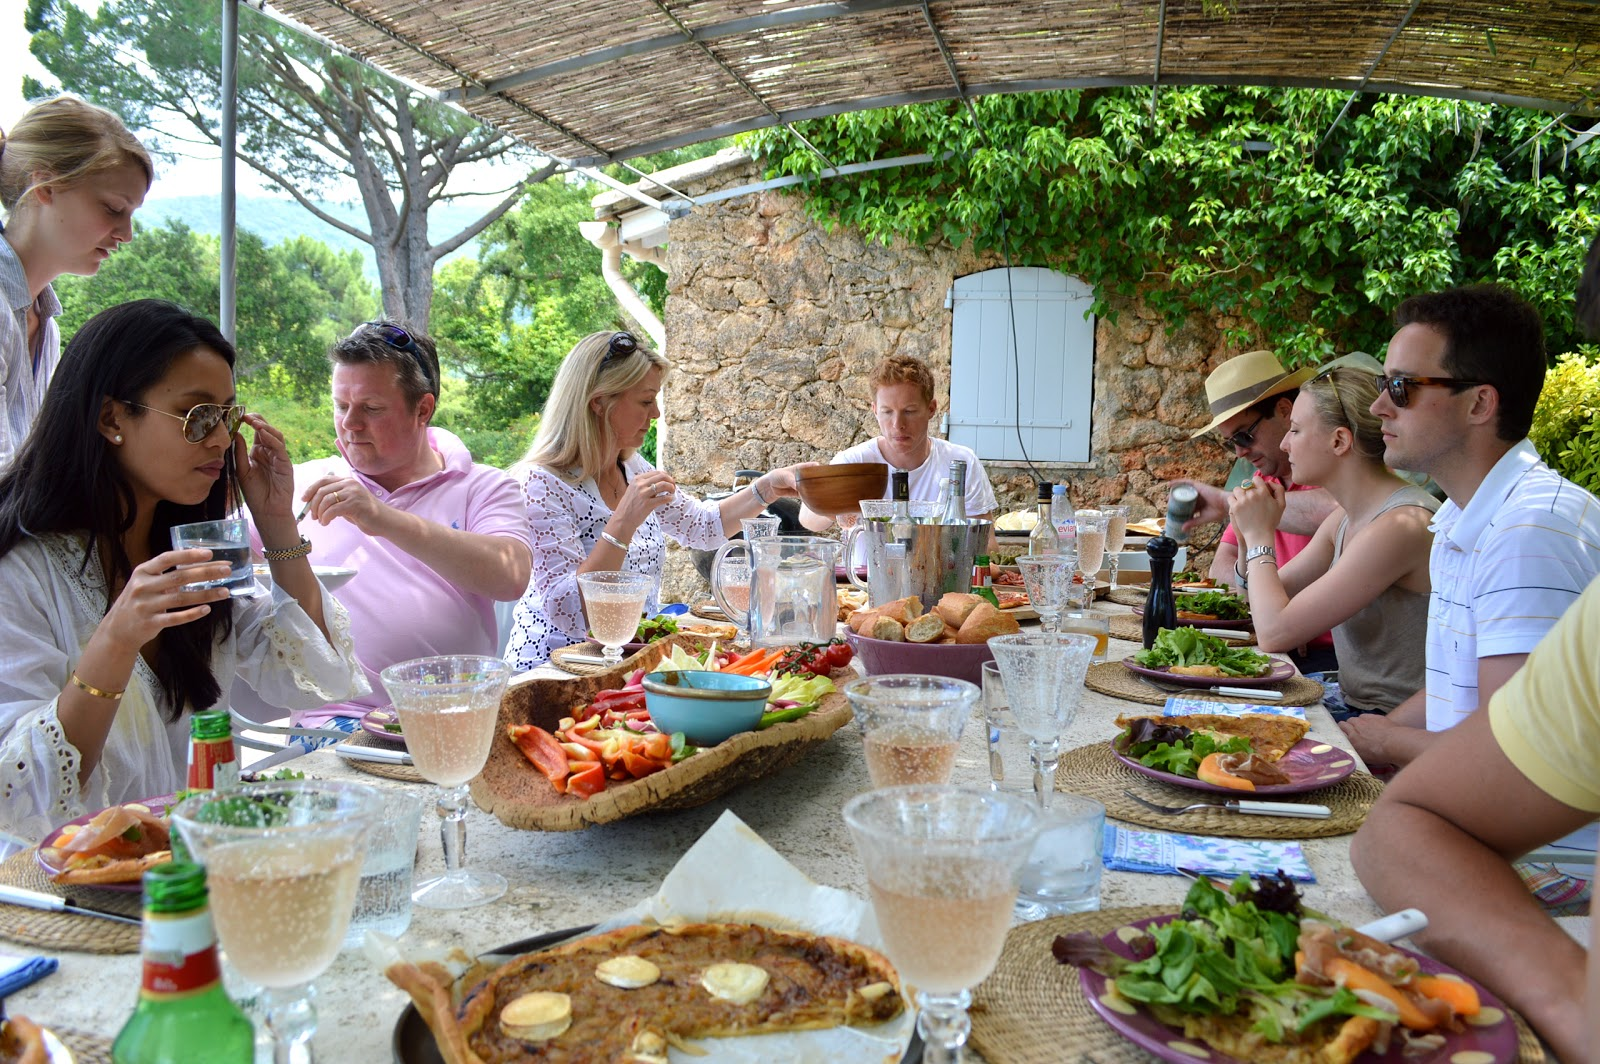 Alexandra d foster destinations perfected gassin france for Meal outdoors